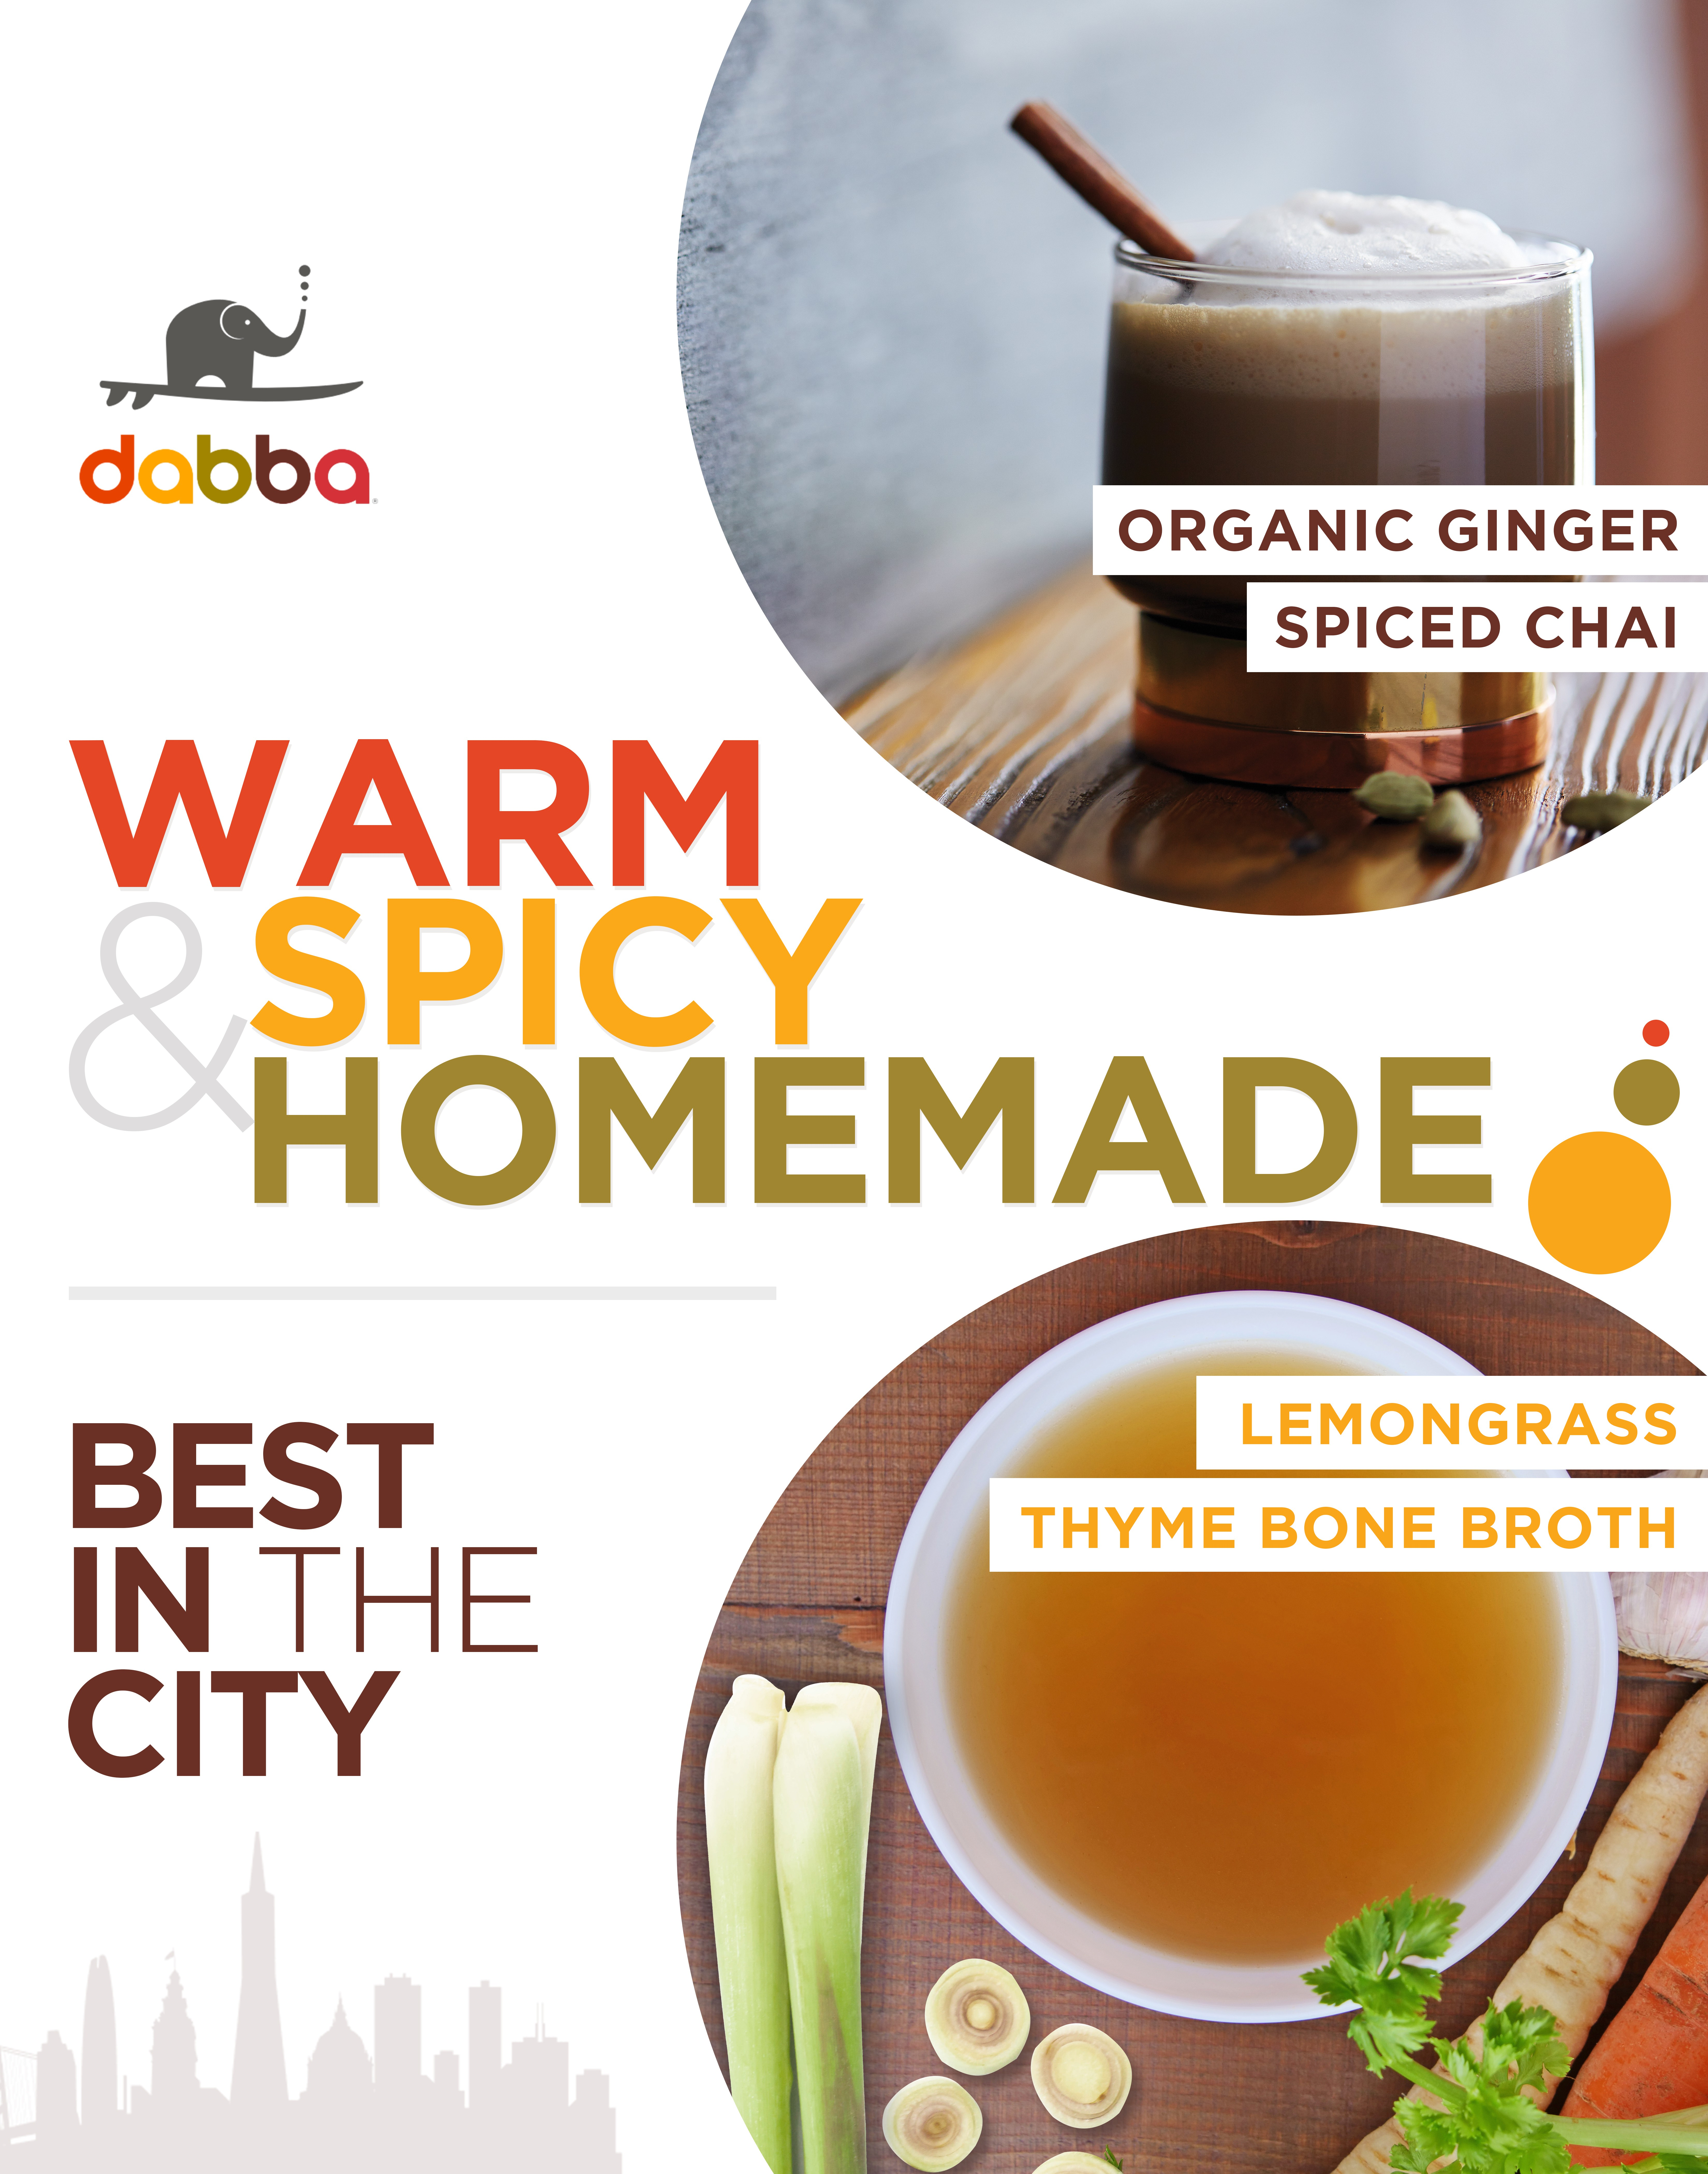 Organic Ginger Spiced Chai and Bone Broth (22x28) poster